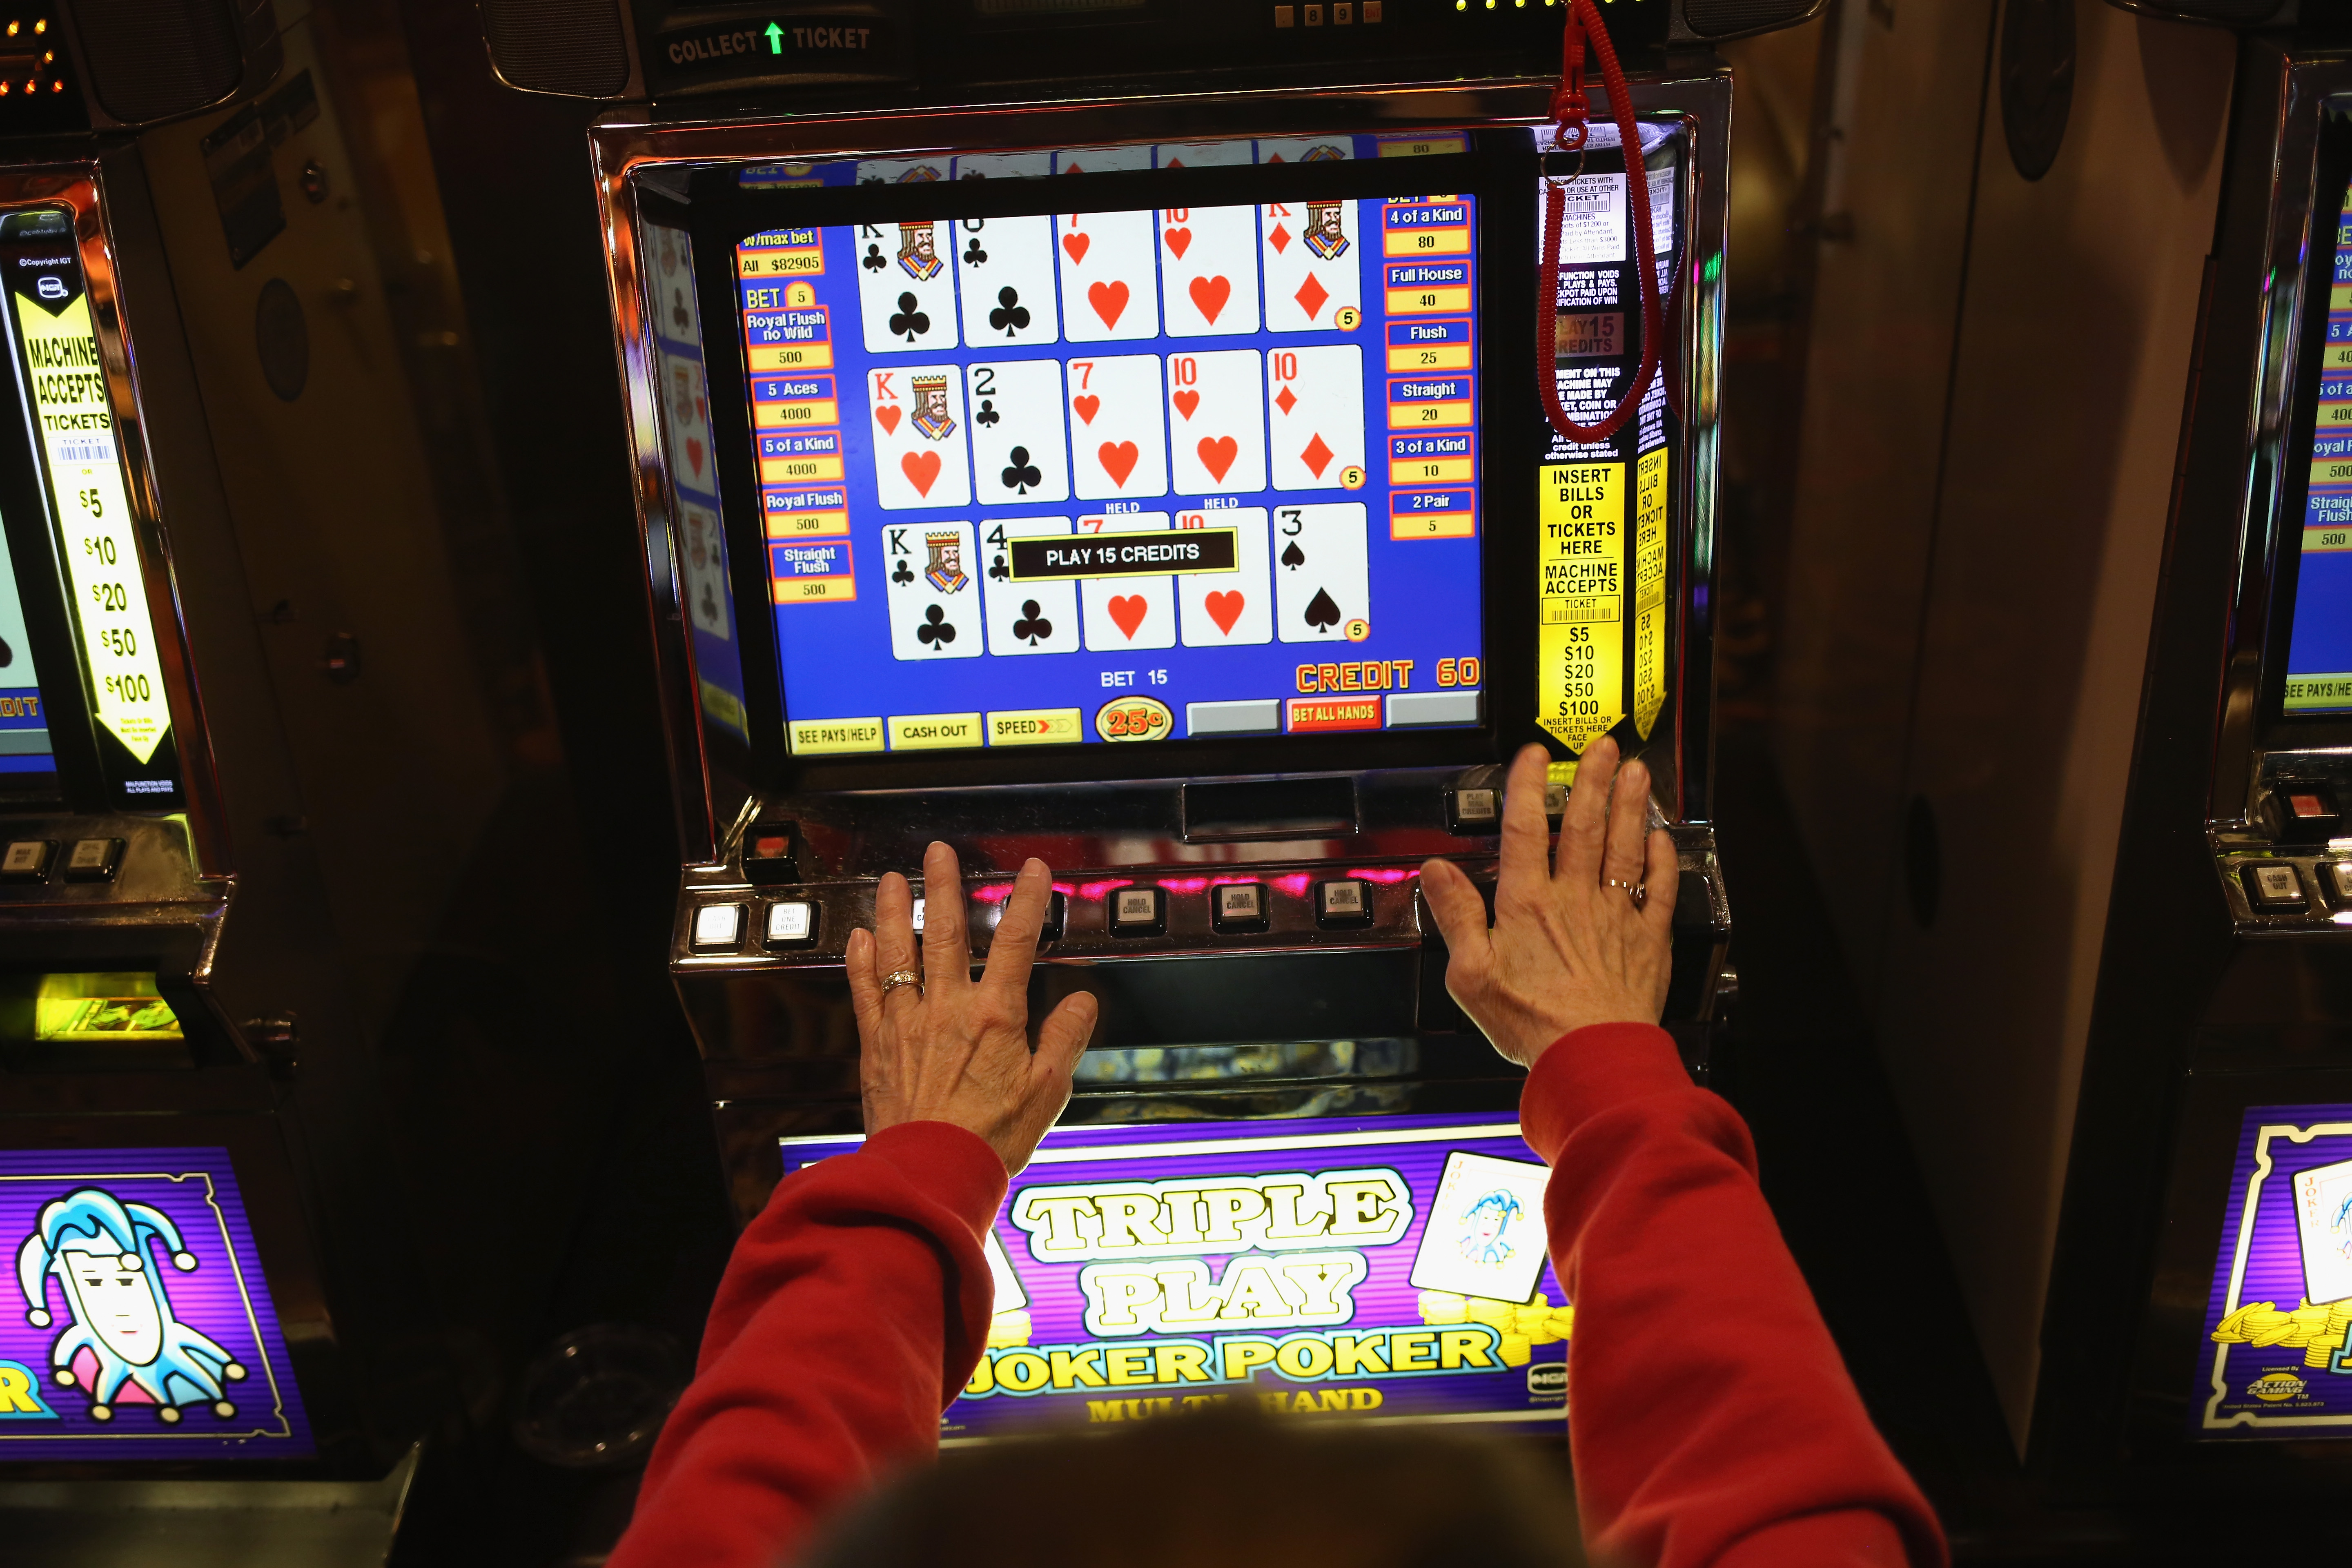 cause or effect of gambling A cause and effect essay is the type of paper that author is using to analyze the causes and effects of a particular action or event a curriculum usually includes this type of exercise to test your ability to understand the logic of certain events or actions.